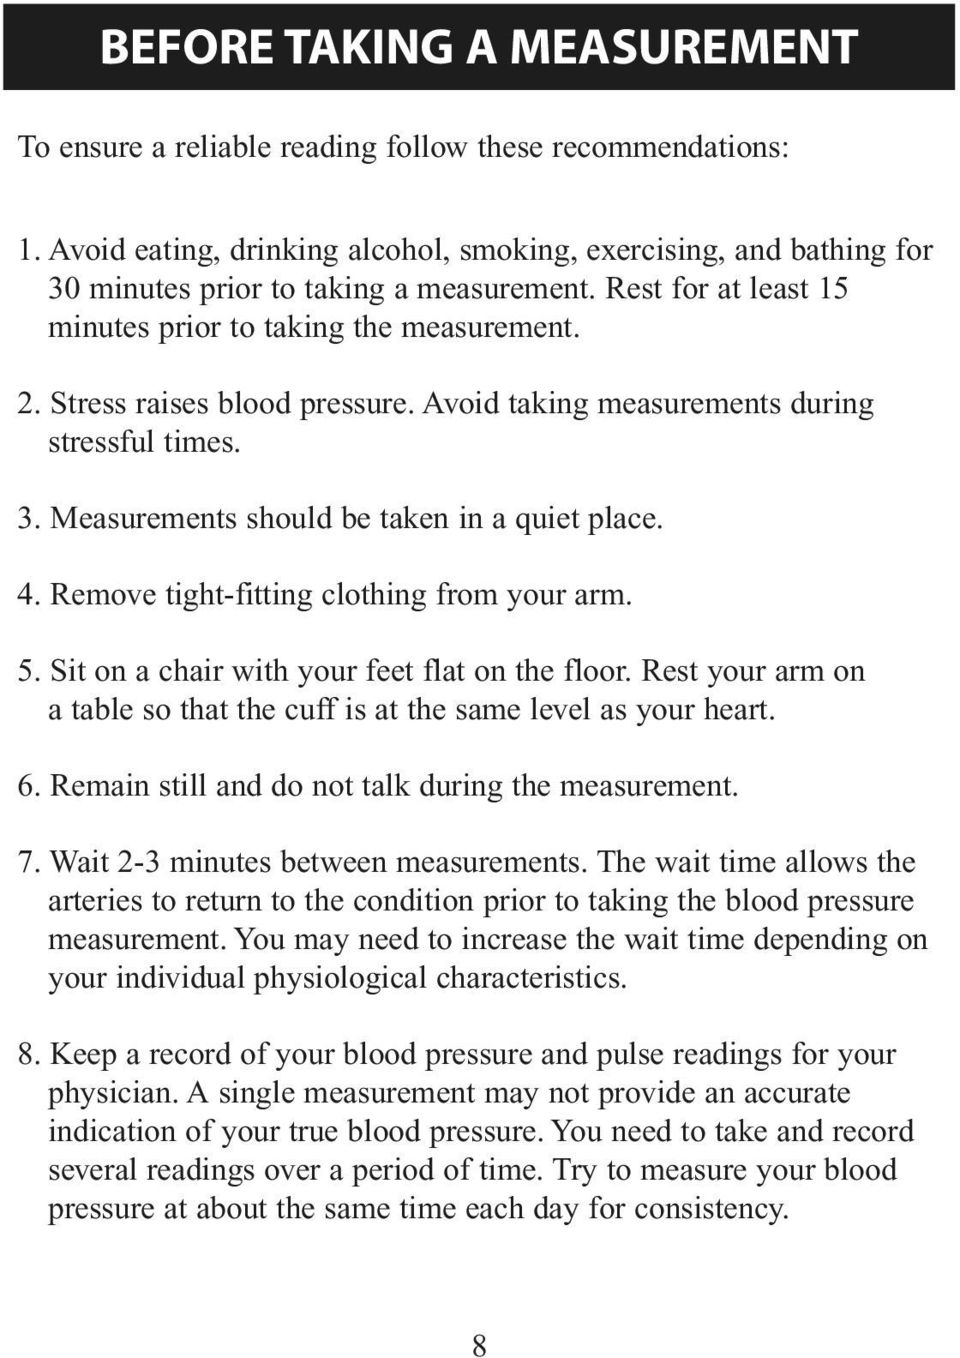 Remove tight-fitting clothing from your arm. 5. Sit on a chair with your feet flat on the floor. Rest your arm on a table so that the cuff is at the same level as your heart. 6.